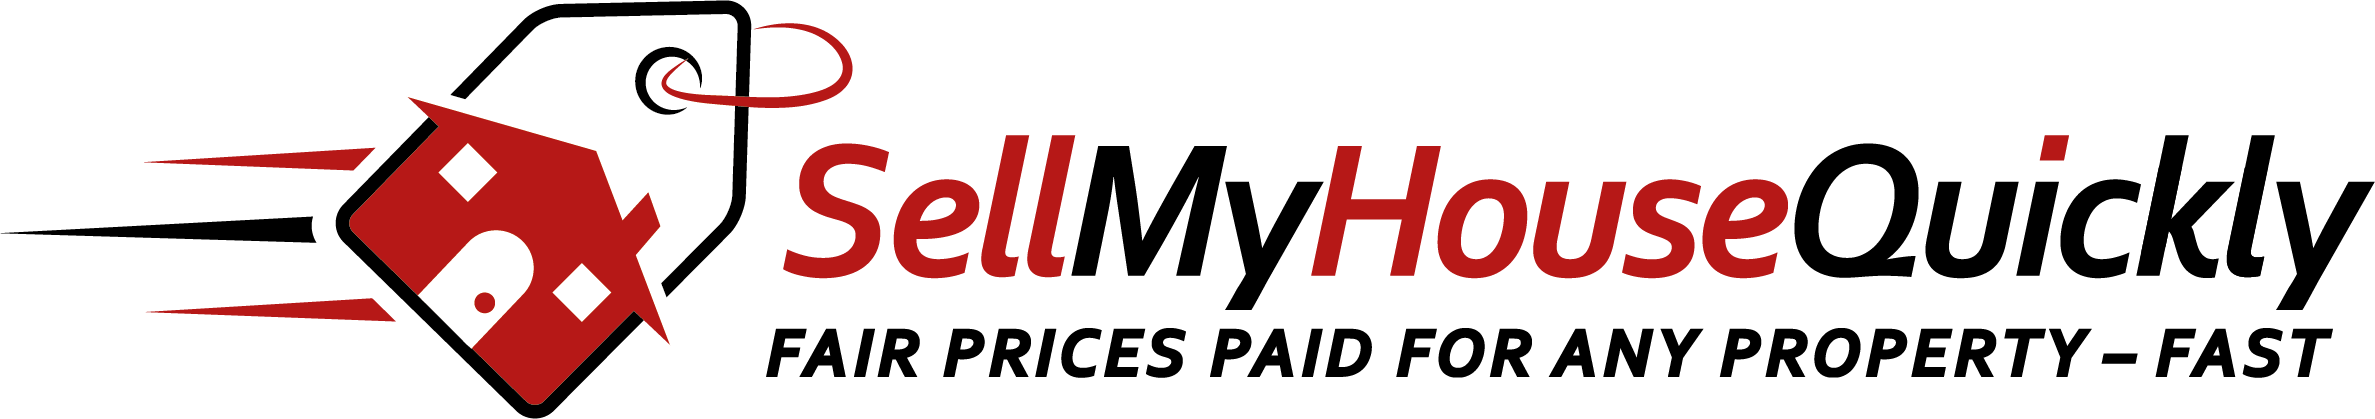 sellmyhousequicklyguildford logo